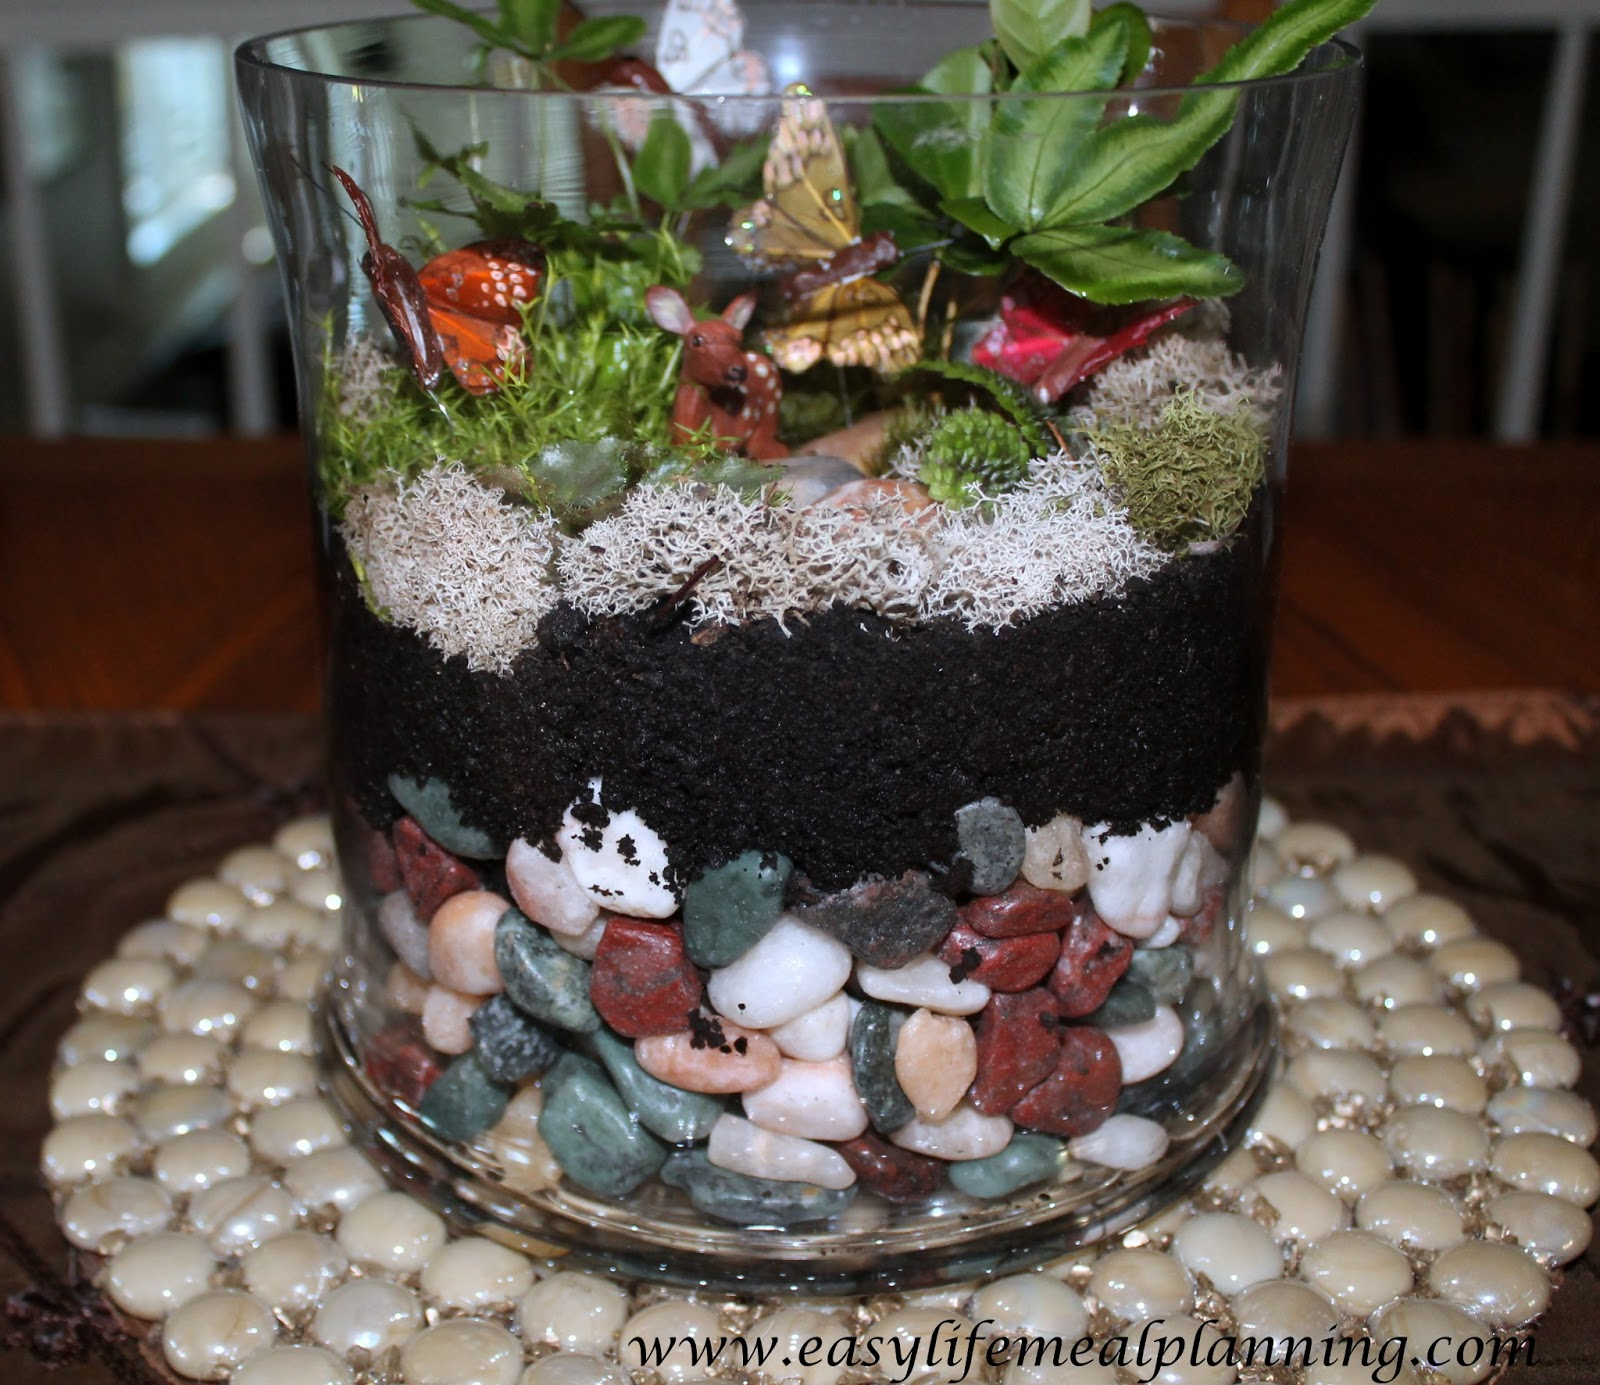 Easy Life Meal And Party Planning Exotic Diy Miniature Plant Terrarium